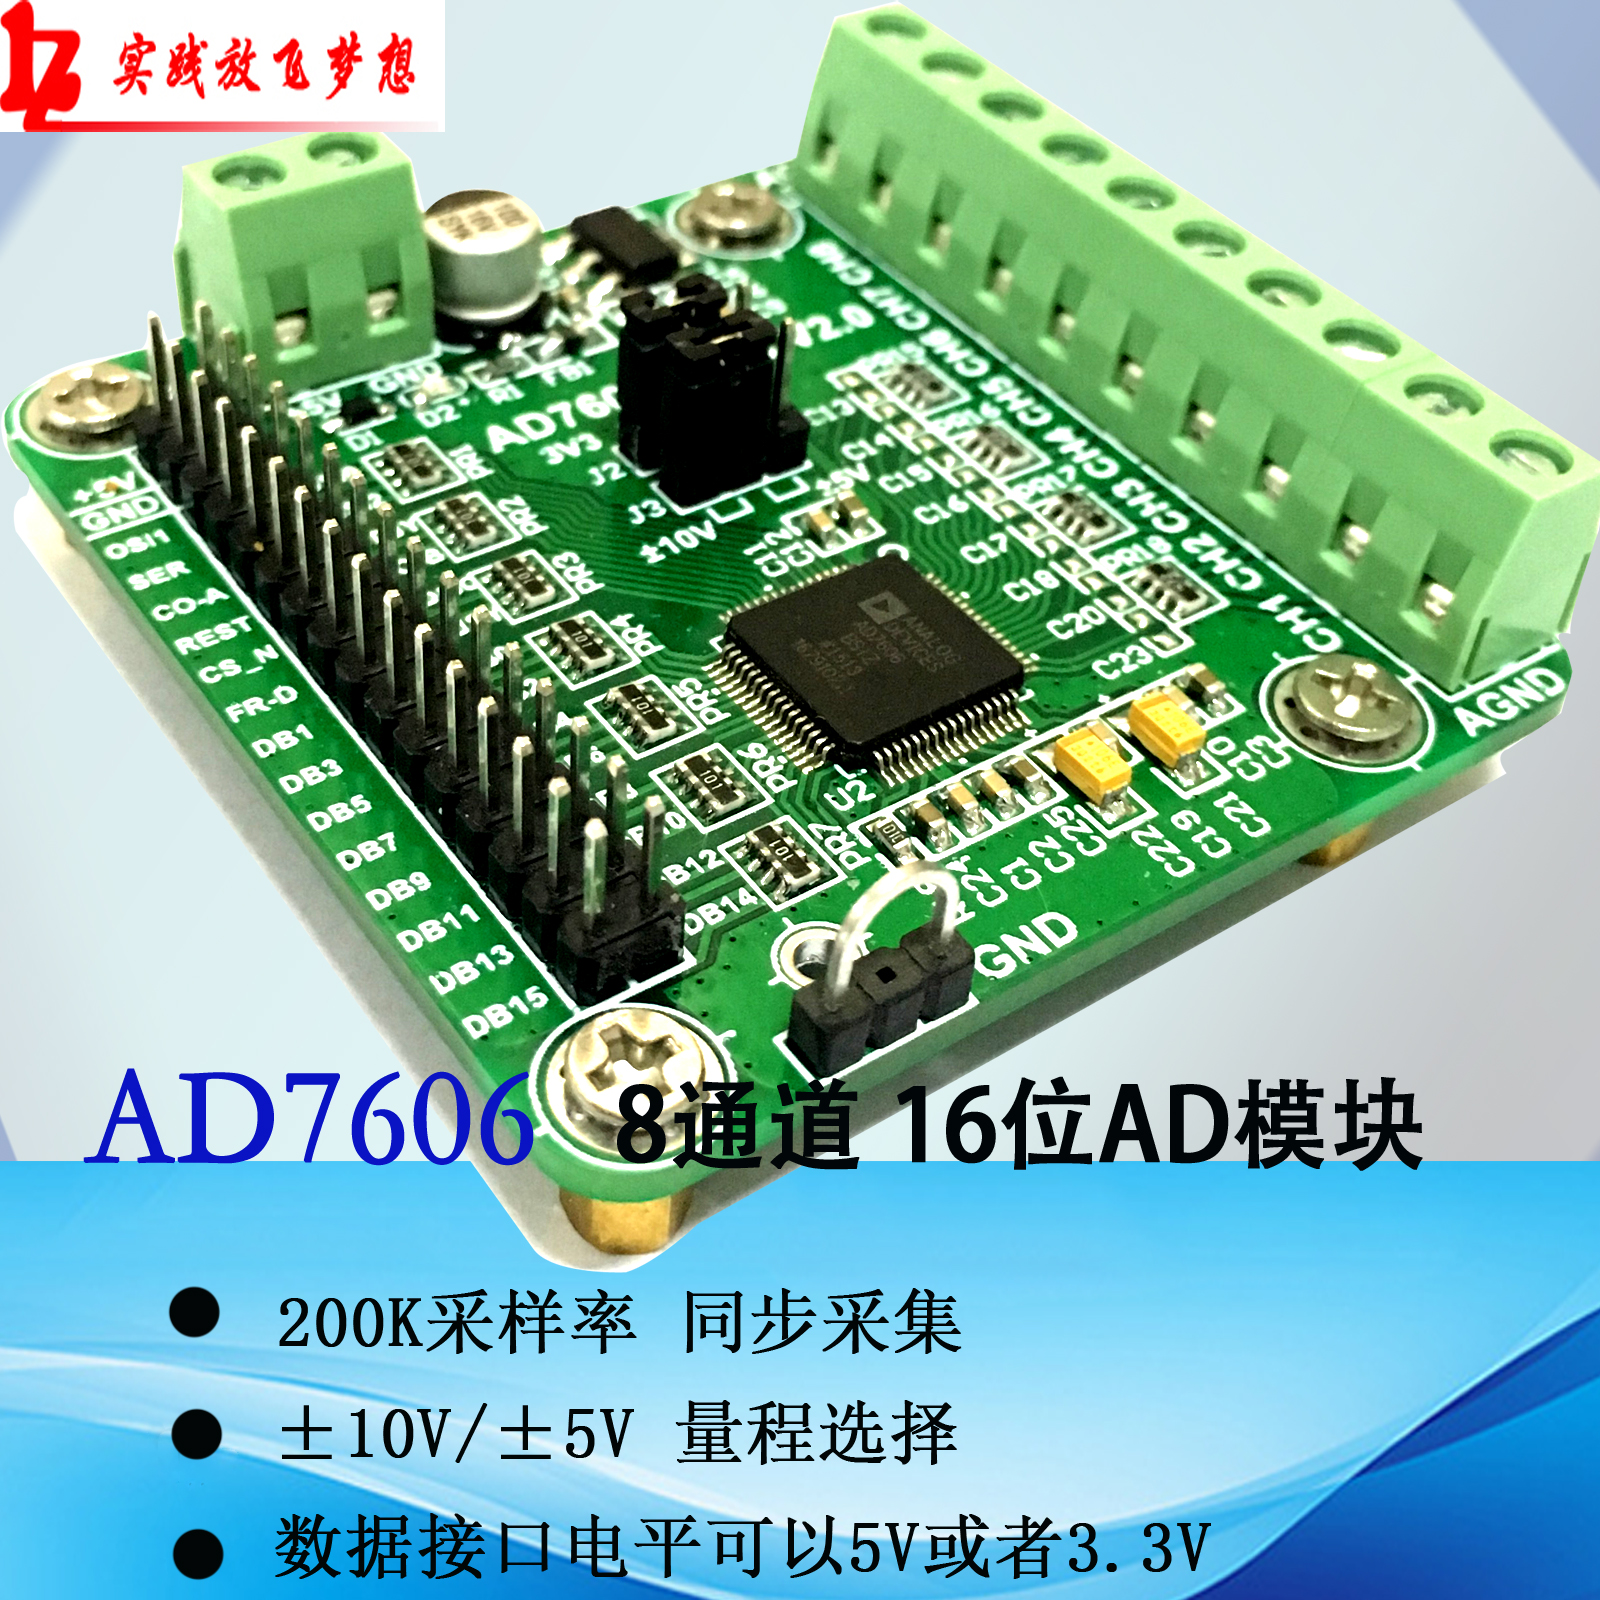 AD7606 Module Data Acquisition Module 16 Bit ADC 8 Synchronous Sampling Frequency 200kSPS